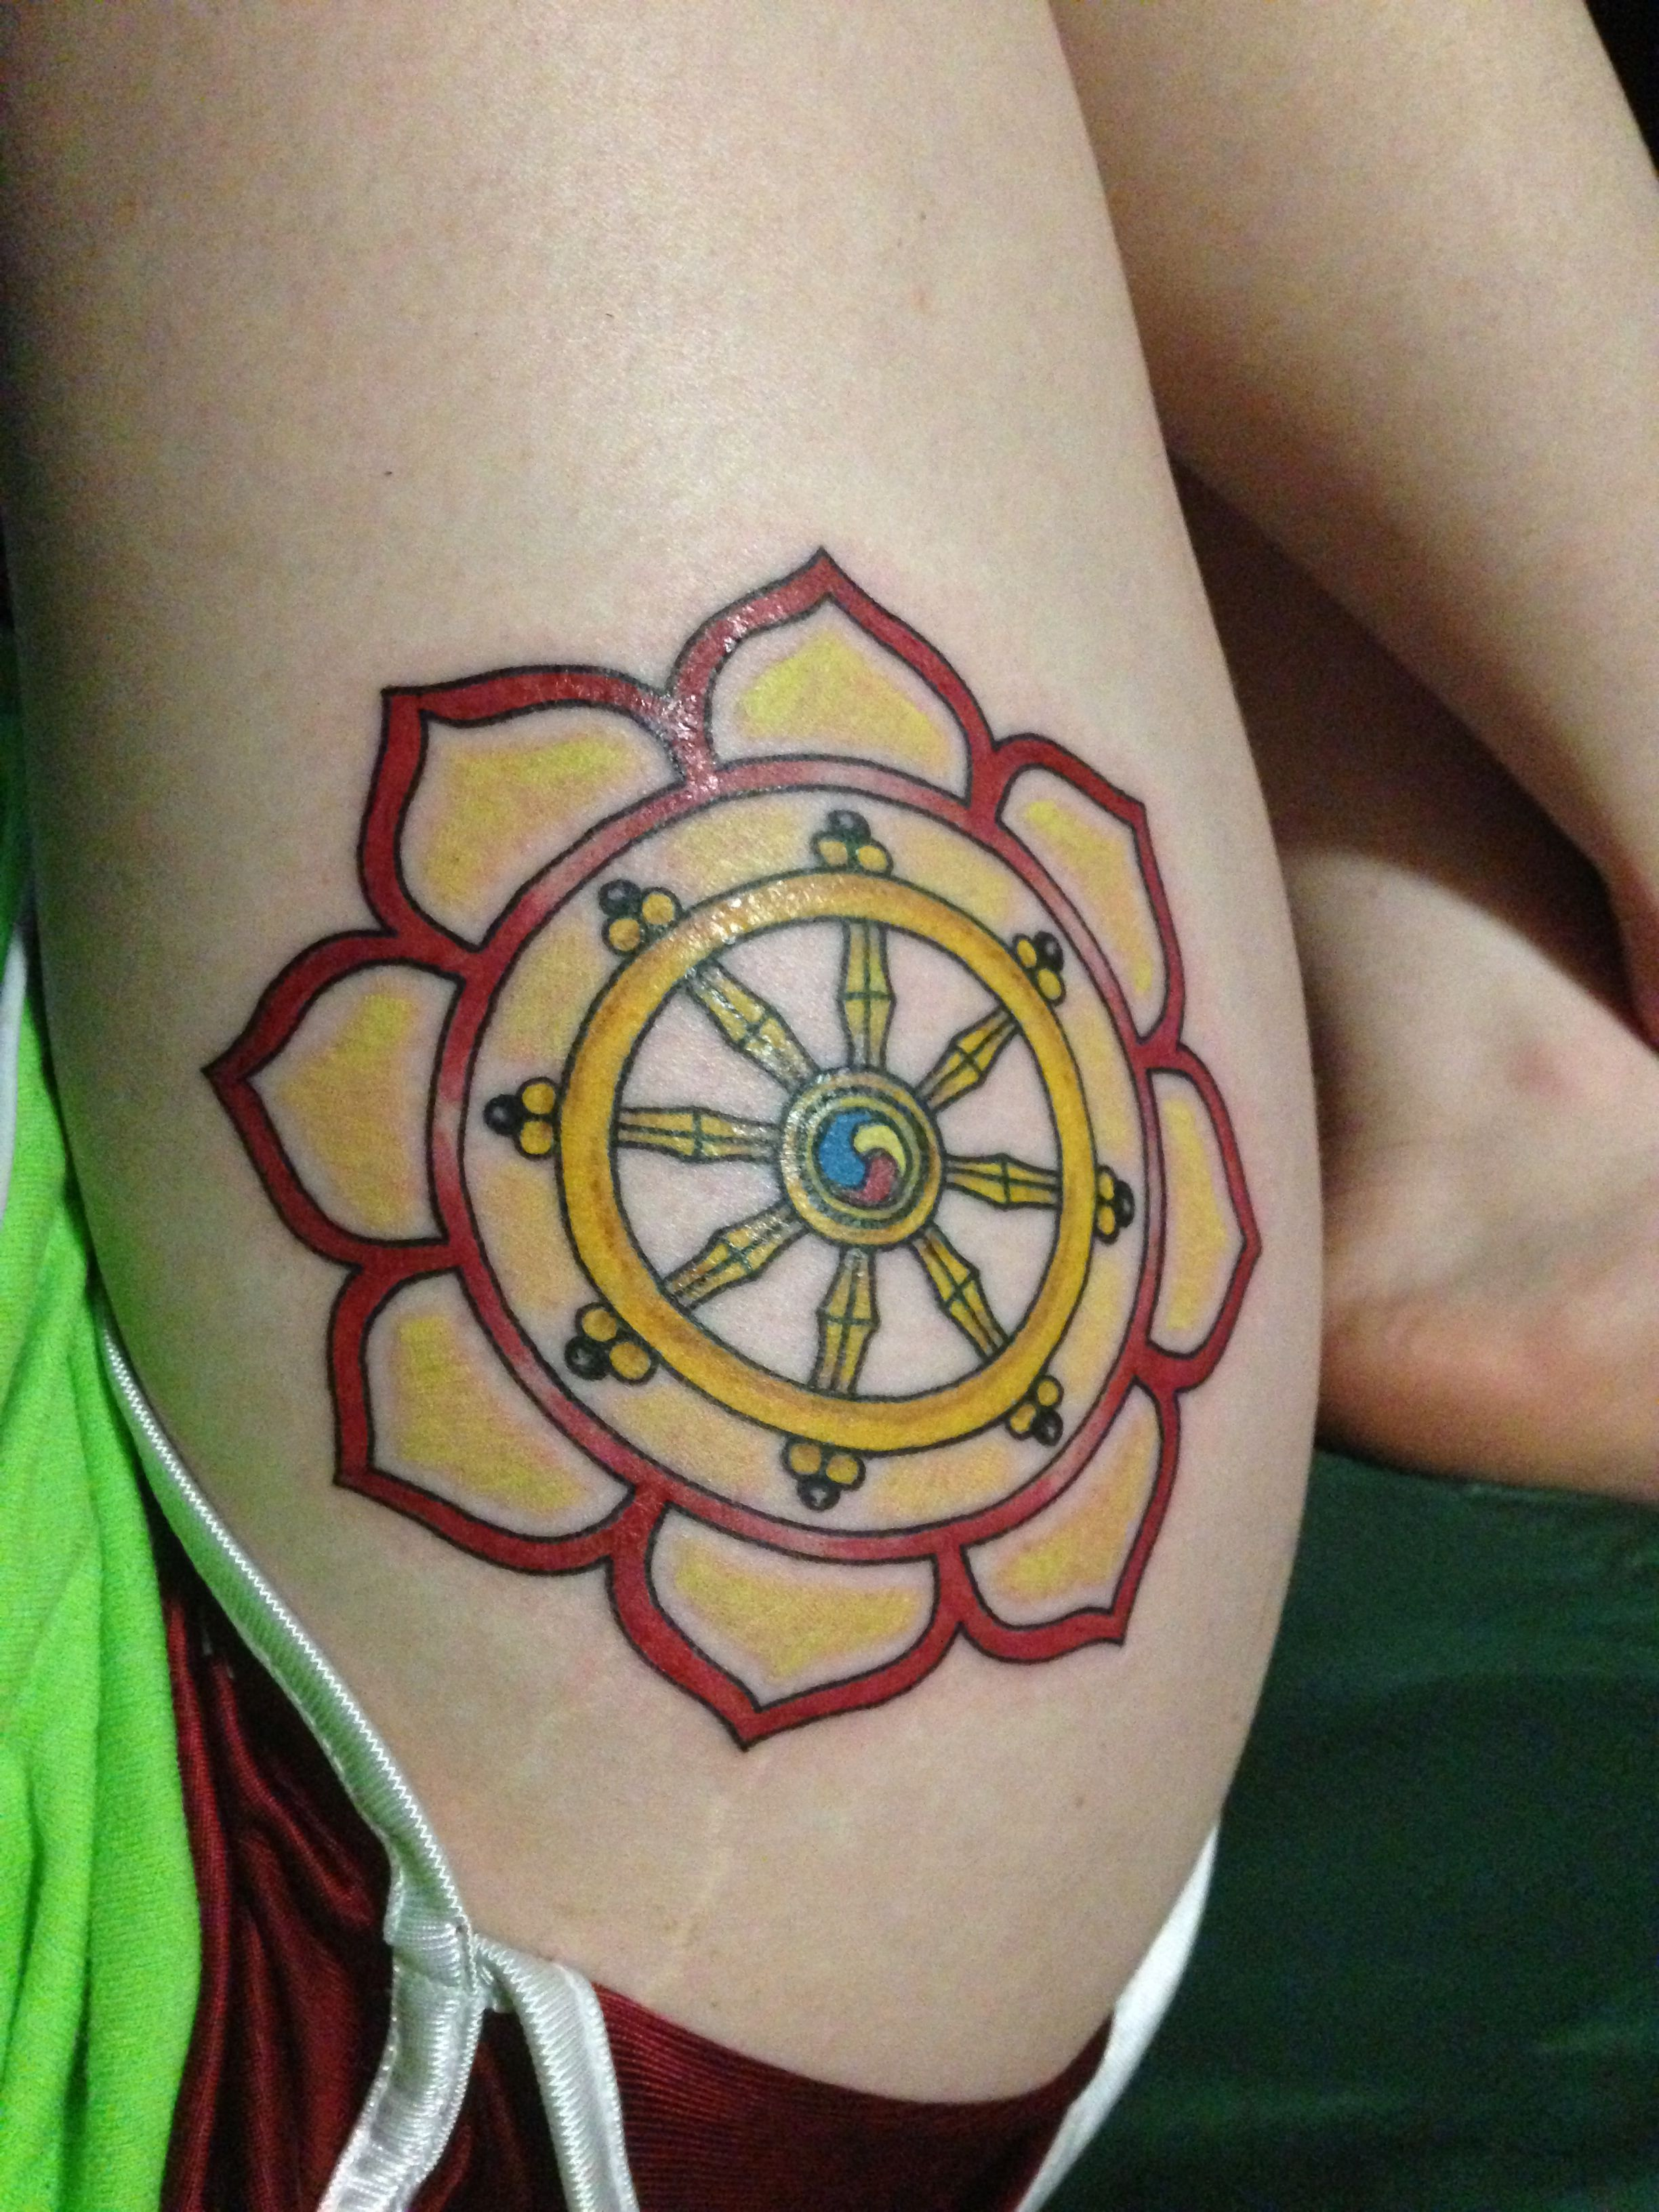 40 Dharma Wheel Tattoo Designs For Men – Dharmachakra Ink Ideas picture